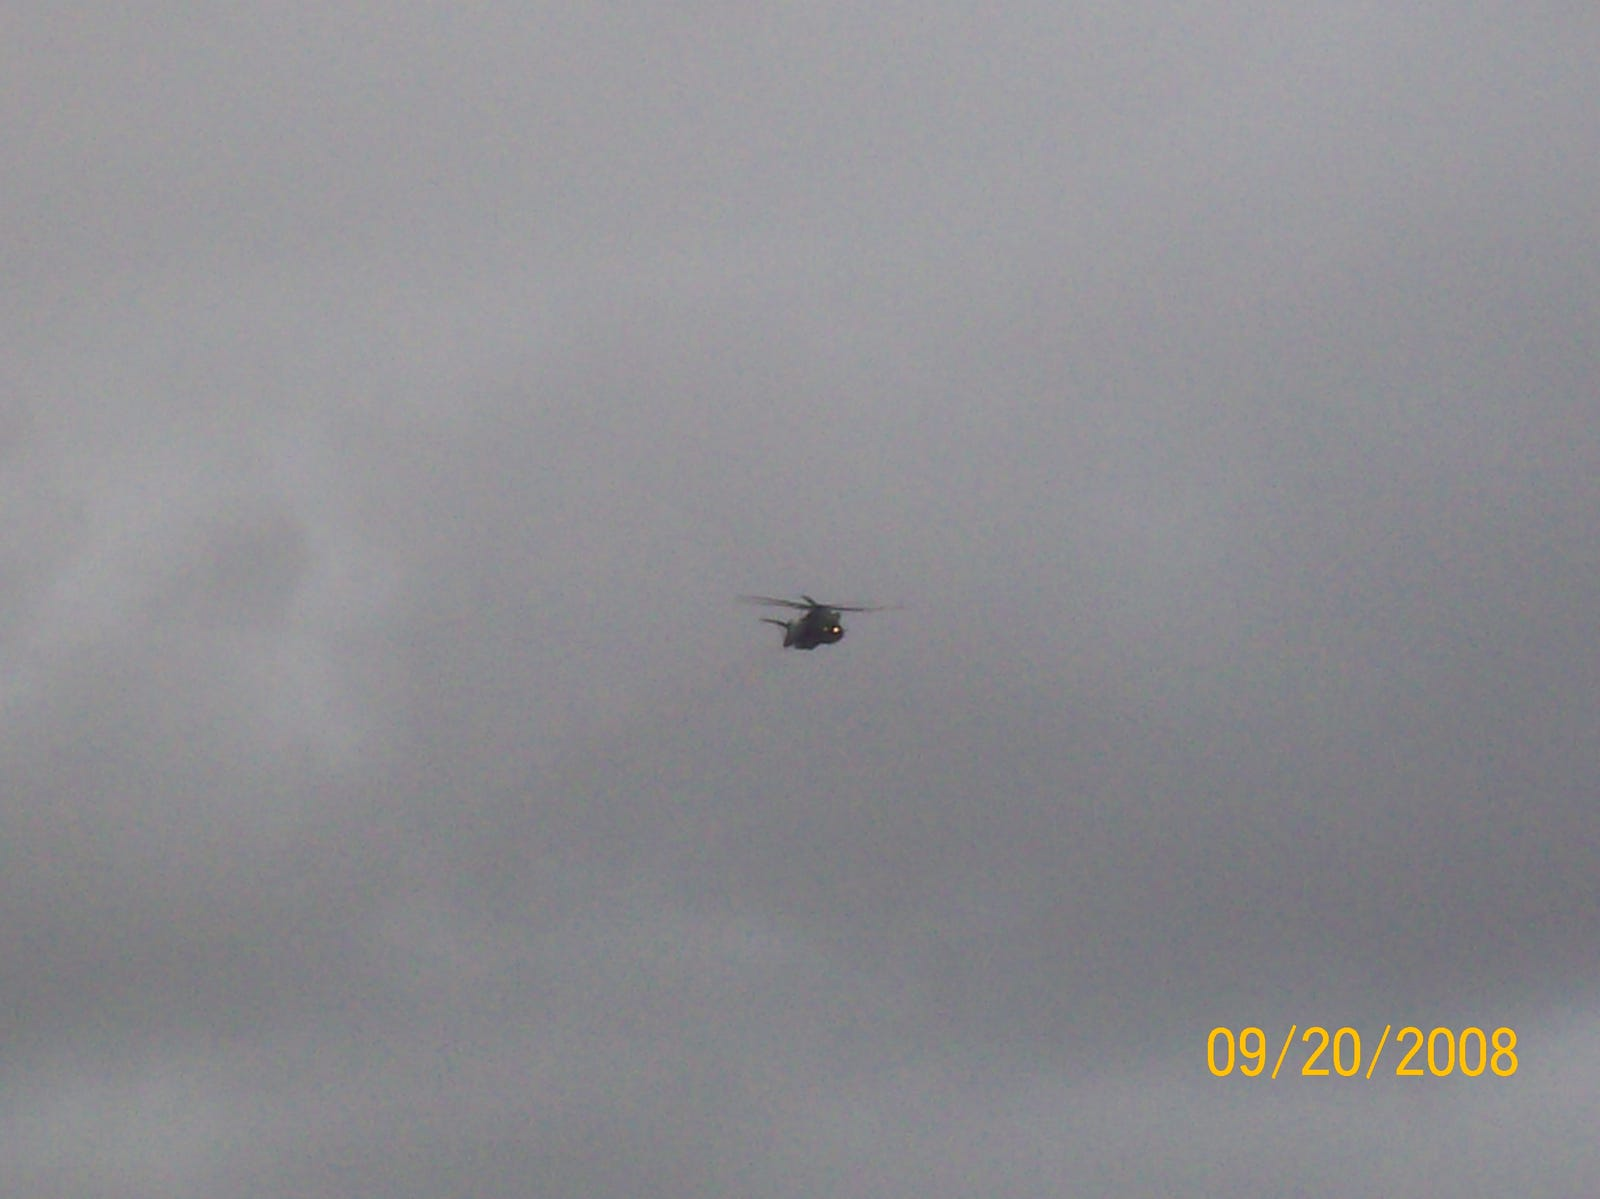 A CH-53E Sea Stallion flying over the crowd.